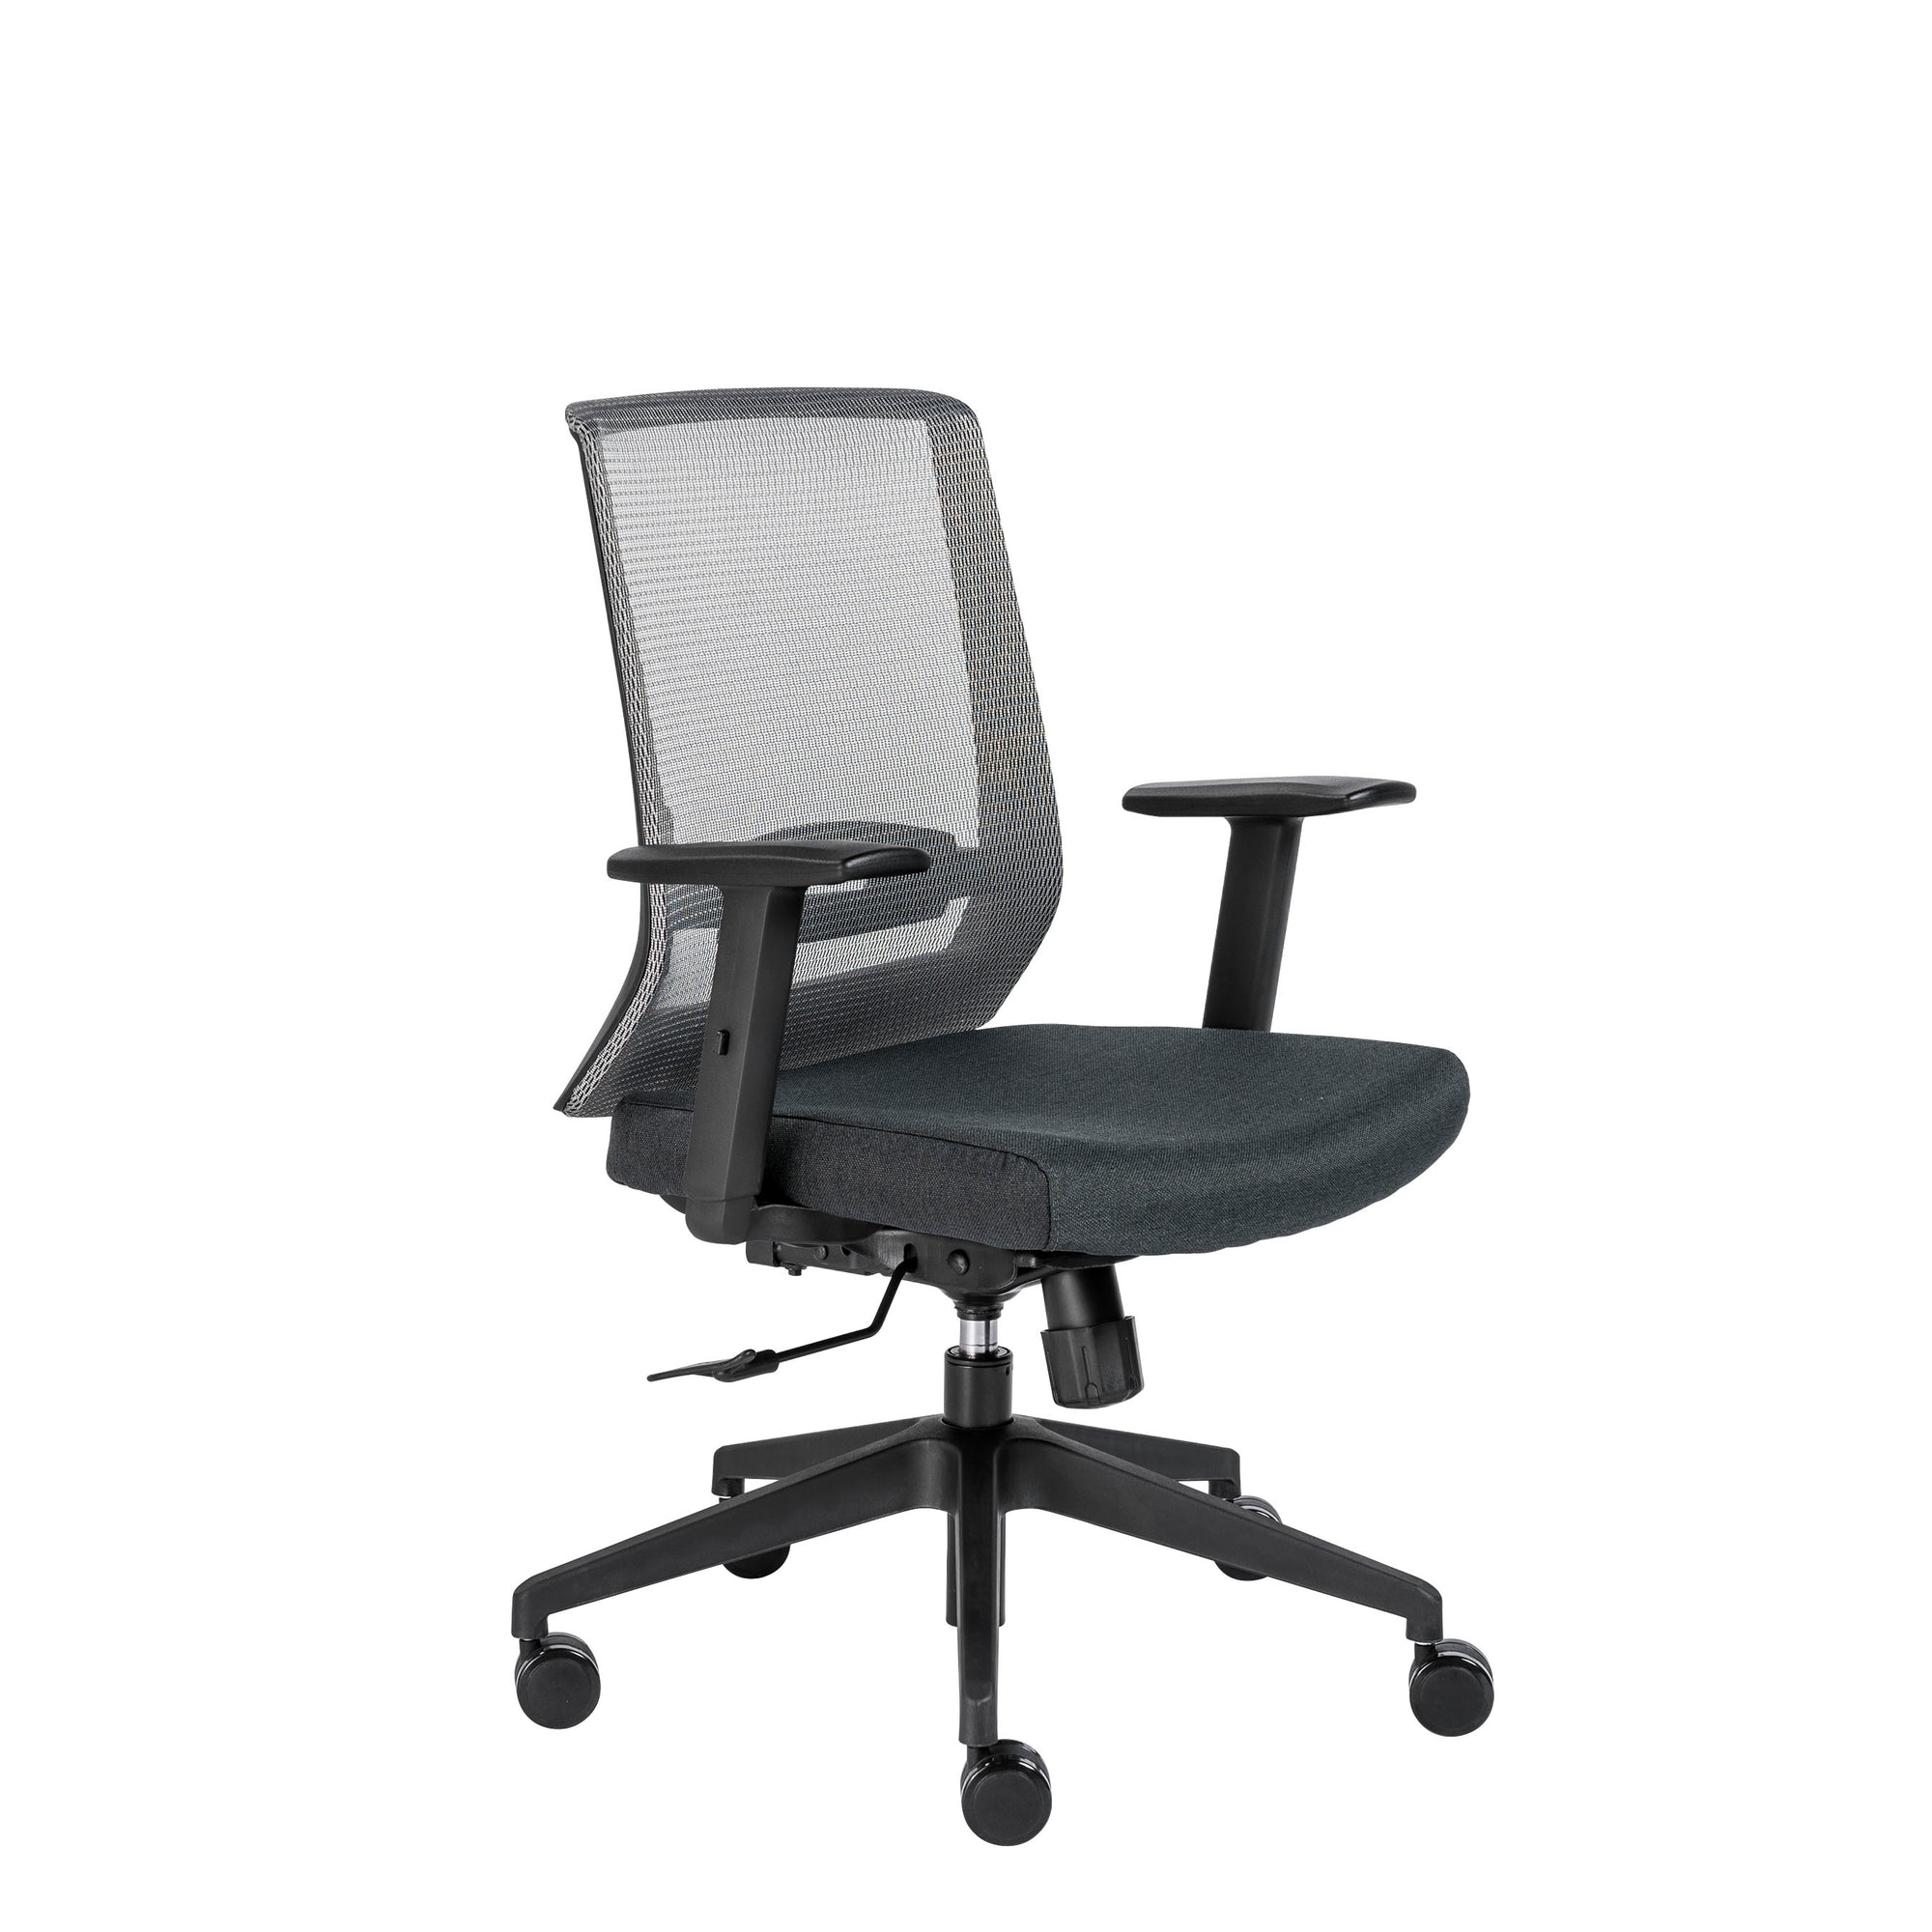 Phenomenal Mesh Gray Black Rolling Office Chair W Adjustable Arms Caraccident5 Cool Chair Designs And Ideas Caraccident5Info